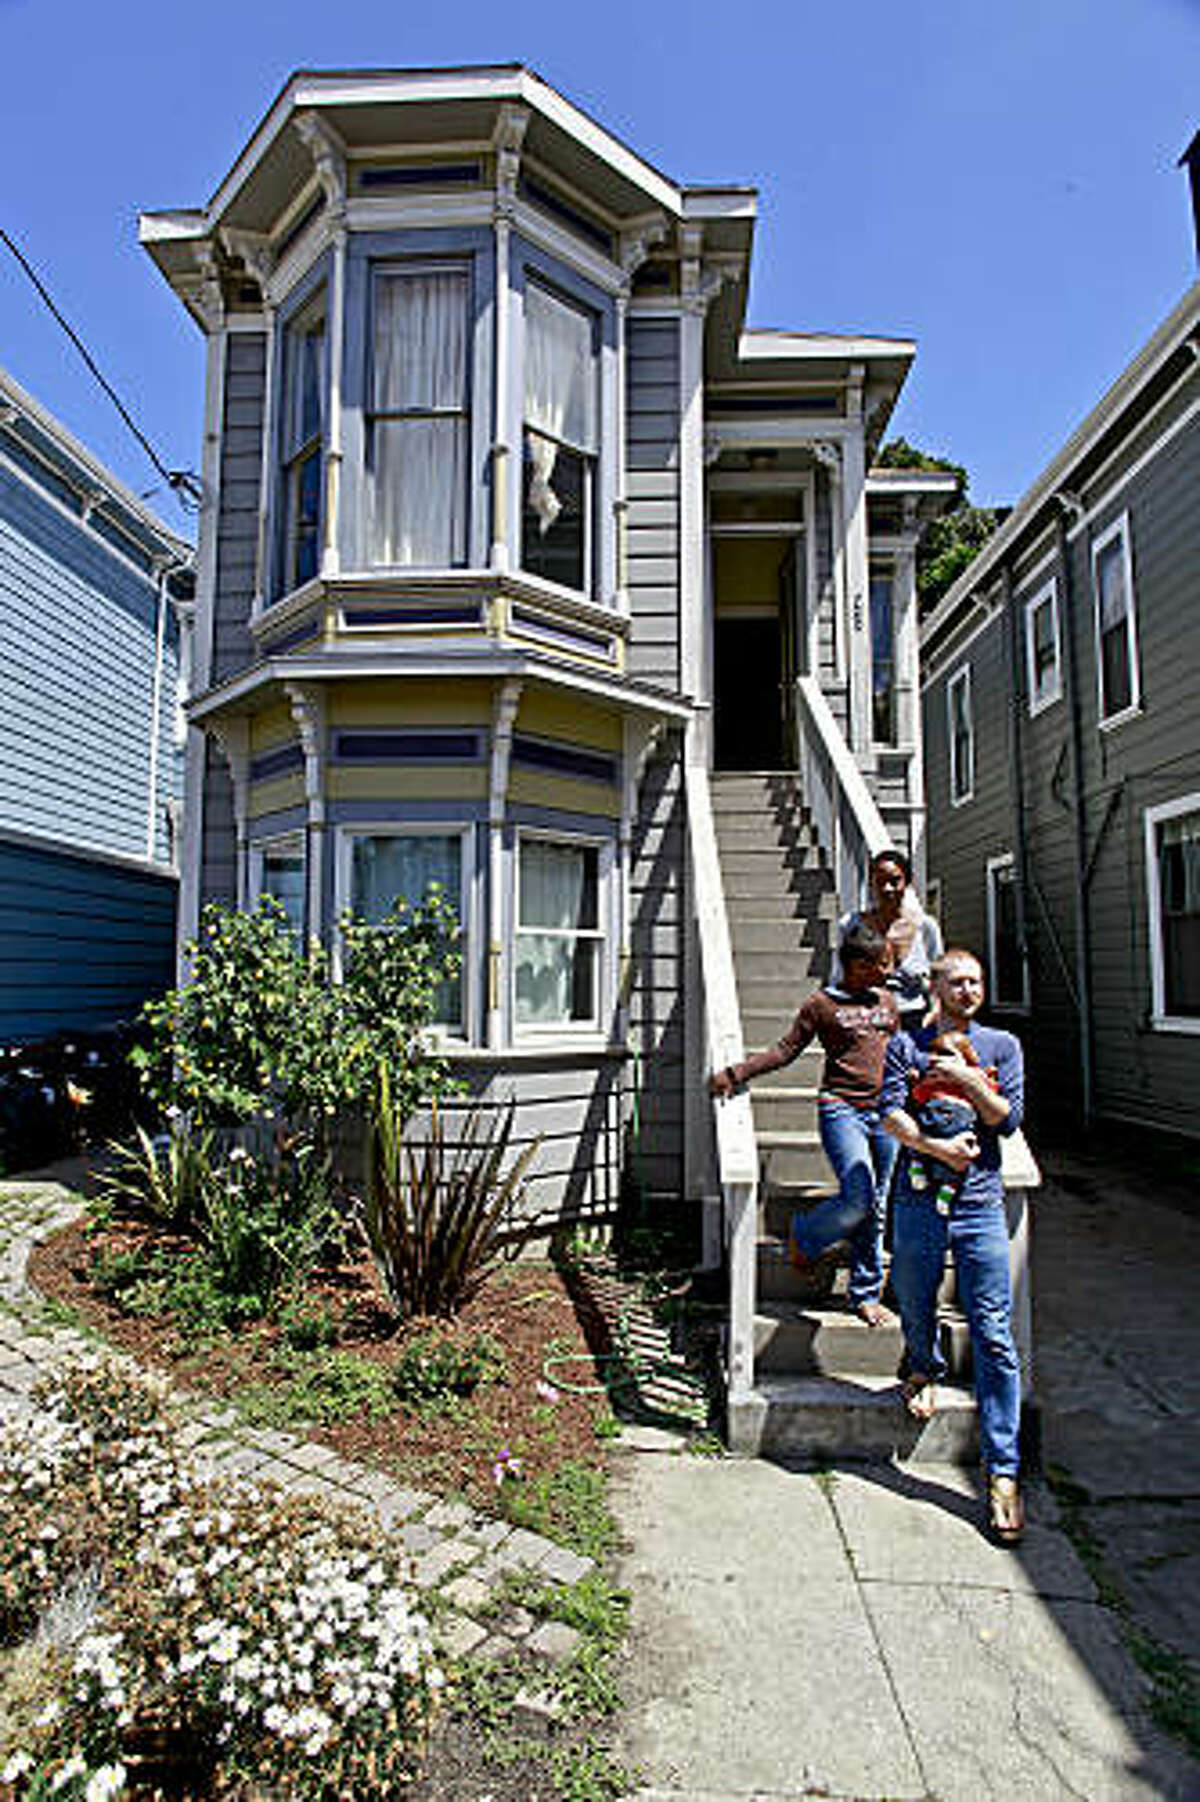 Andrei Soroker, on Wednesday July 22, 2009,at his home in Oakland, Calif. which he purchased two years ago with a present day mortgage of $500,000 and the value less than half of that. Soroker with his son Boris, 7-months-old, wife Ayana and daughter Harmony, 9-years-old. Soroker came up with a creative solution, creating a web site where he performs songs in English and Russian and invites visitors to contribute money towards his home.